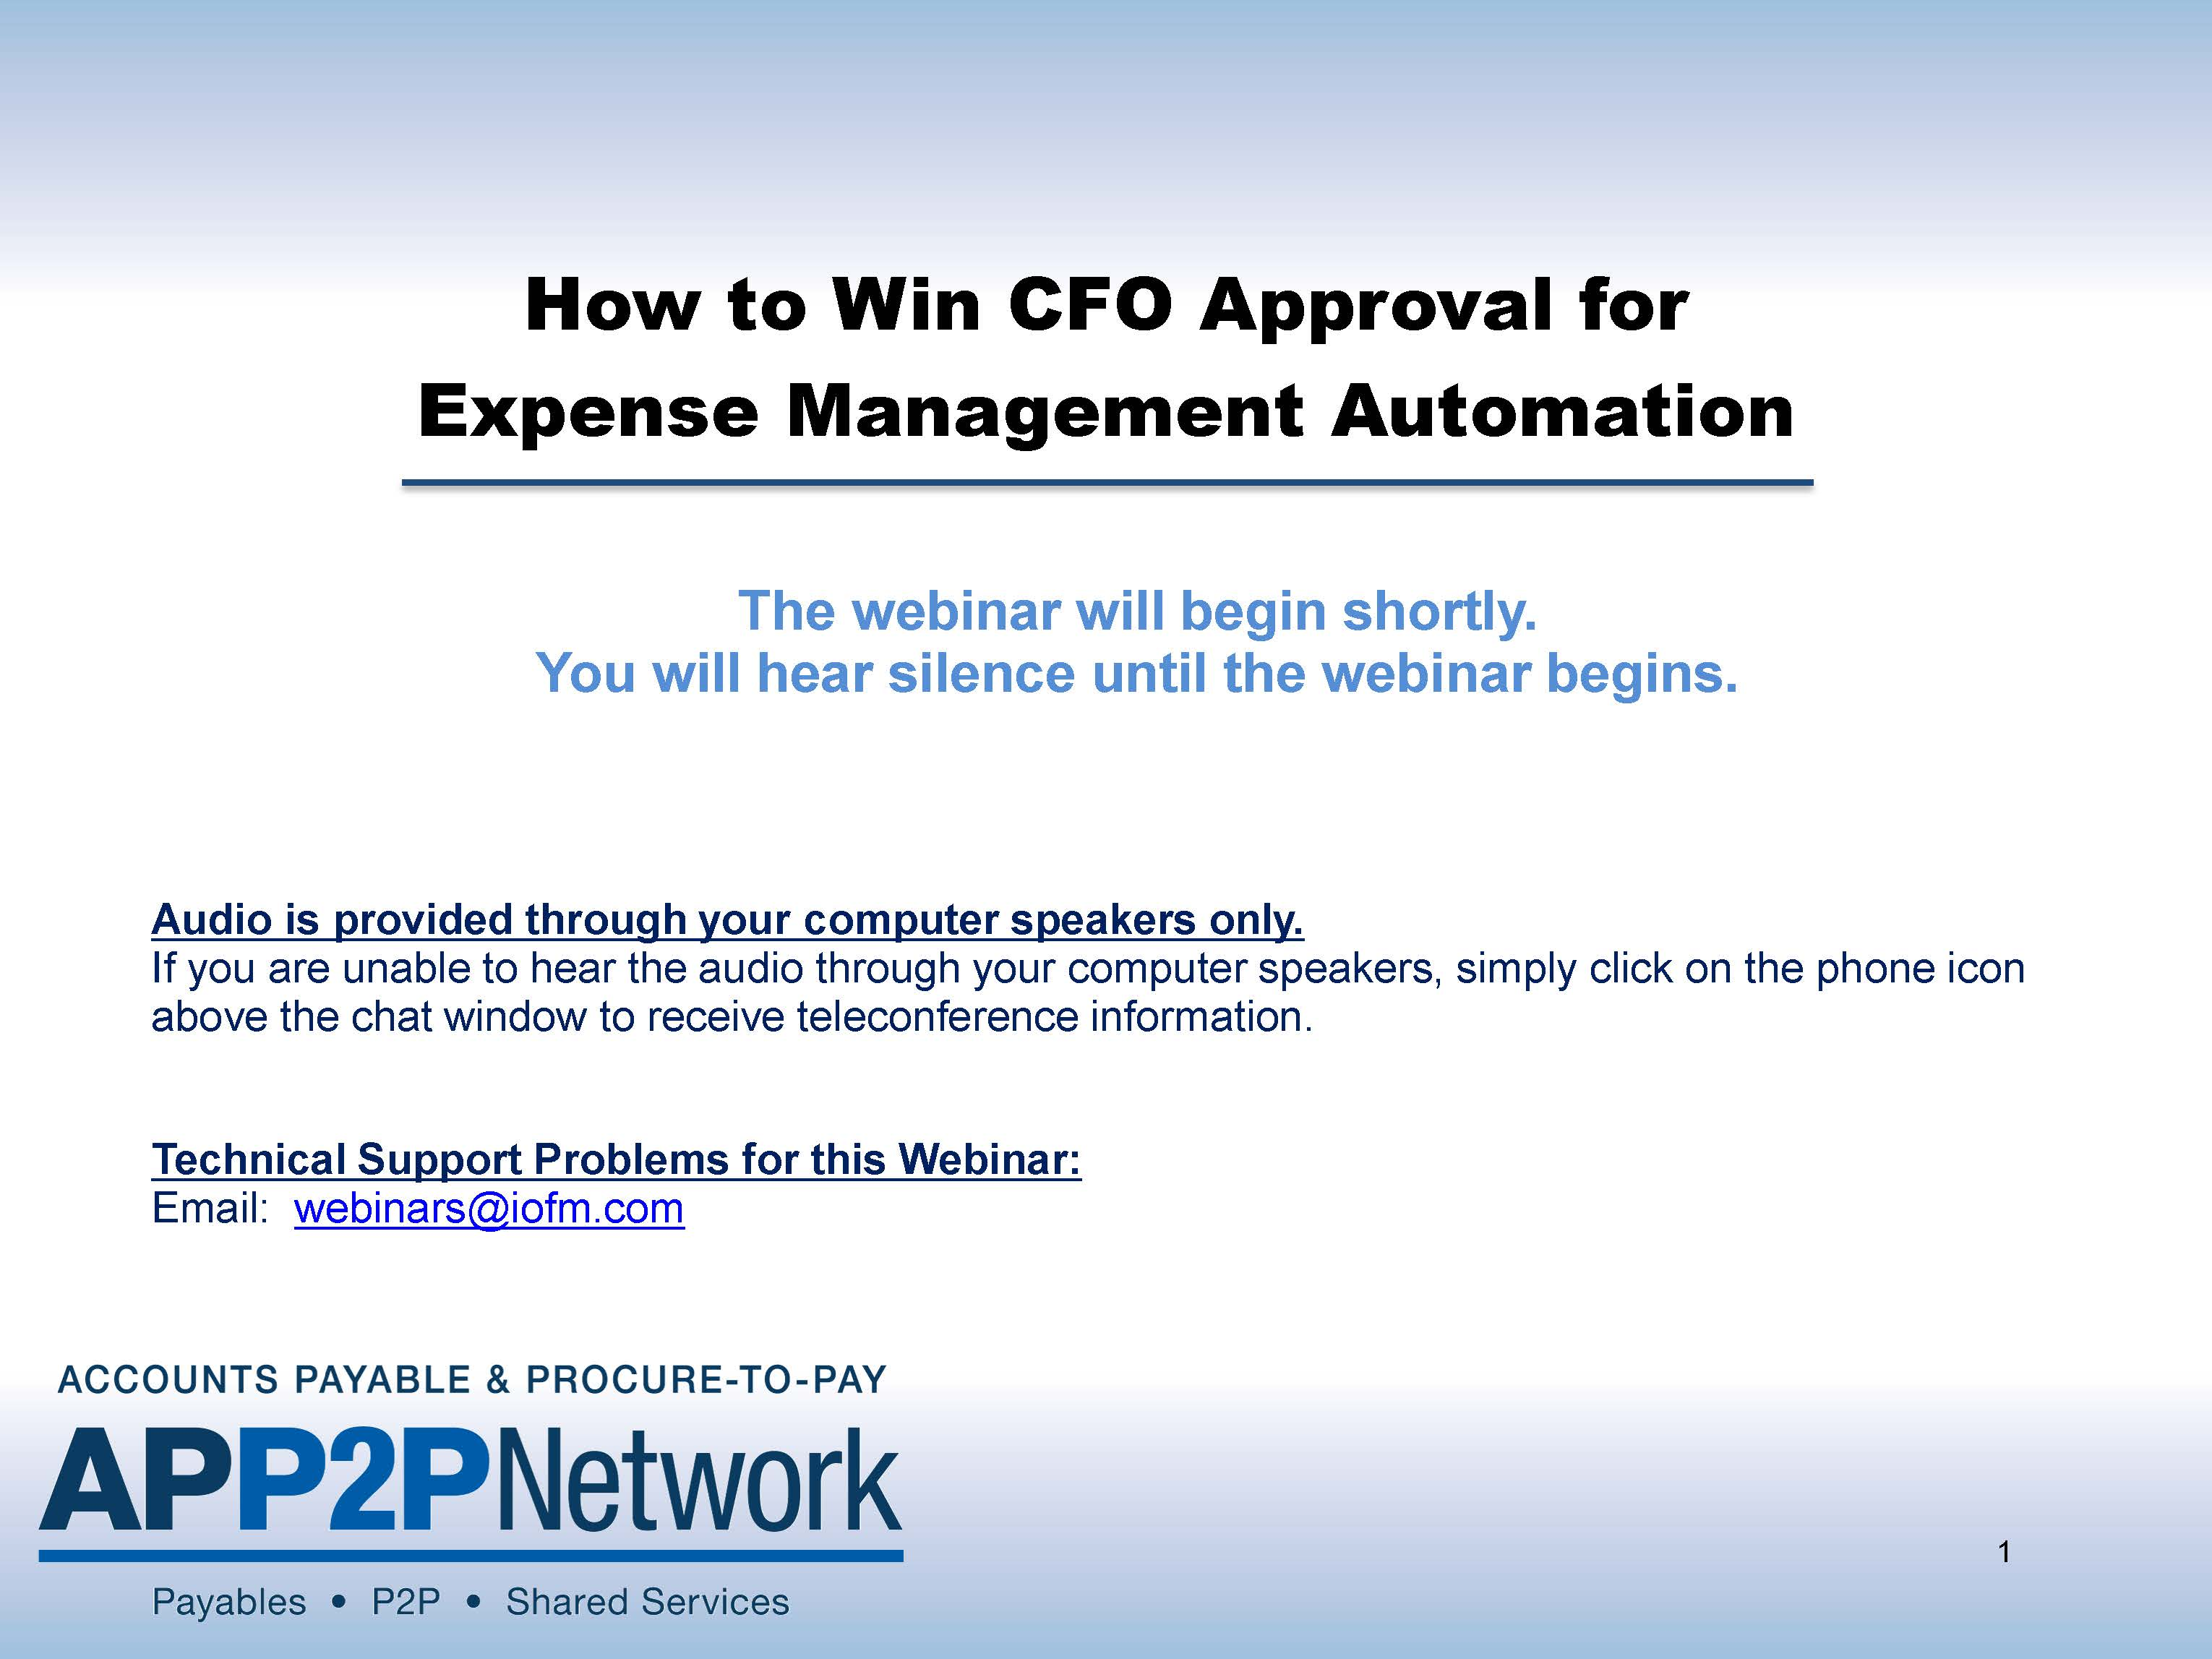 How to Win CFO Approval for Expense Management Automation